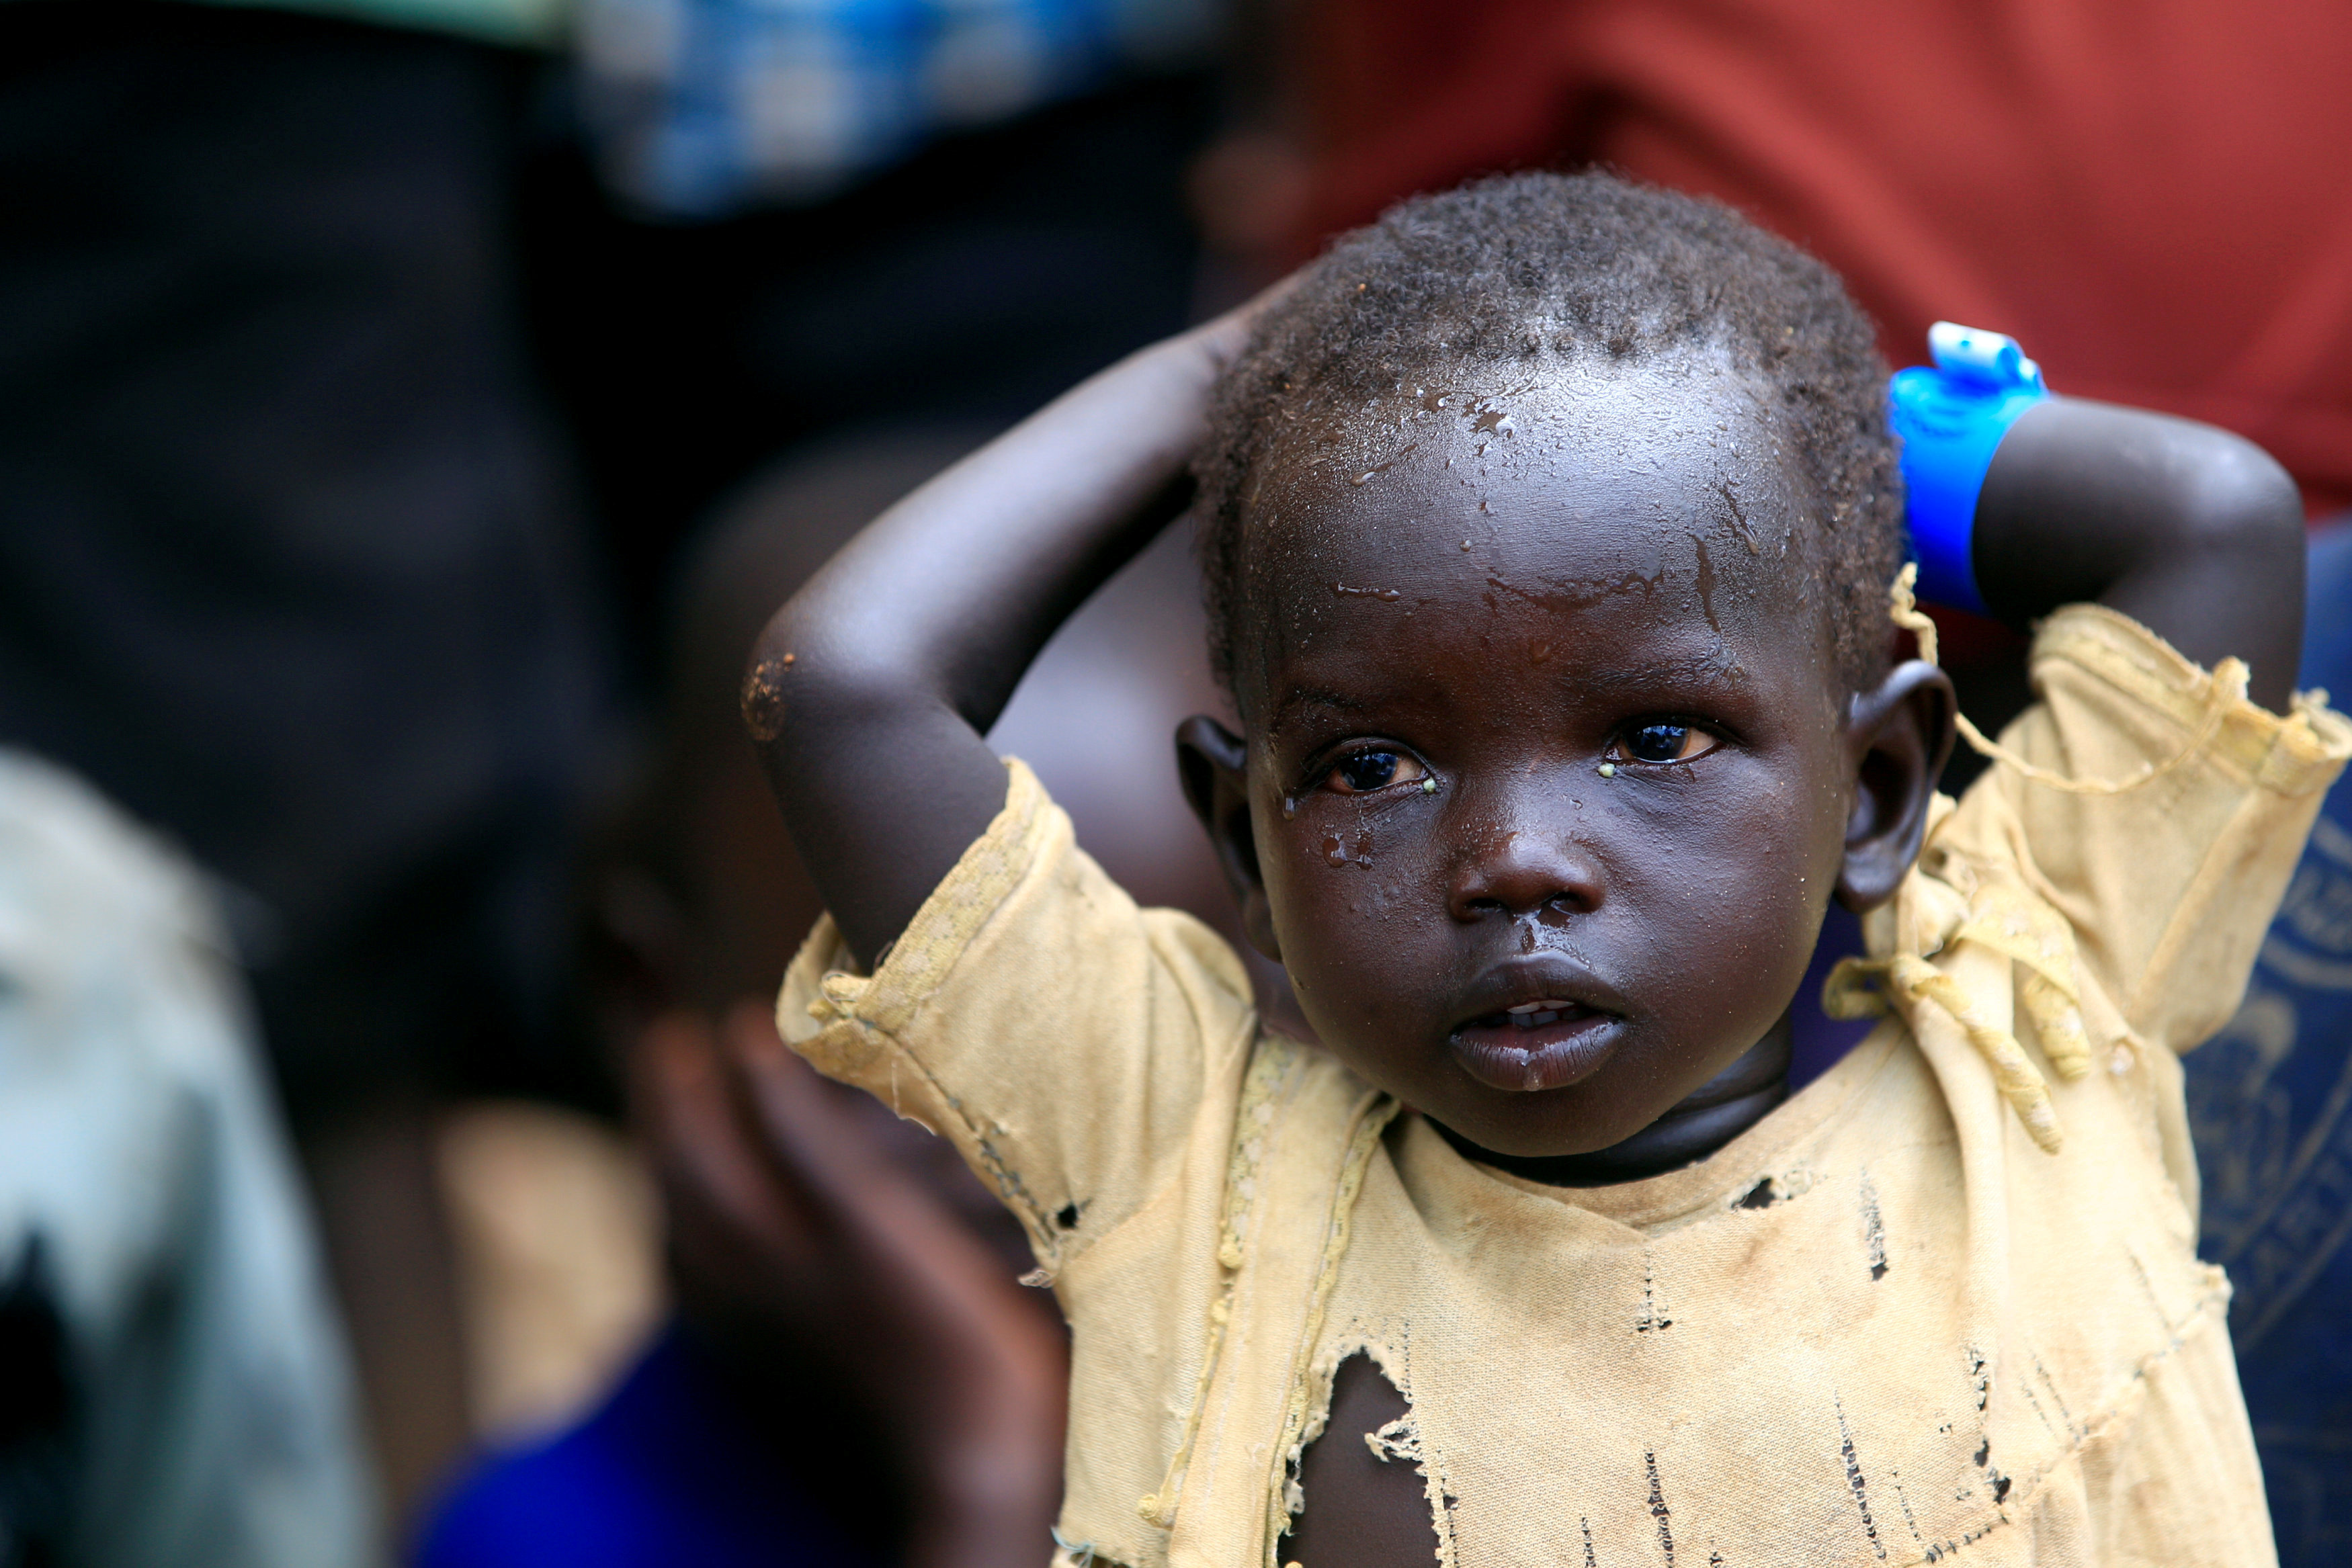 FILE PHOTO: A child displaced due to fighting in South Sudan arrives in Lamwo after fleeing fighting in Pajok town across the border in northern Uganda